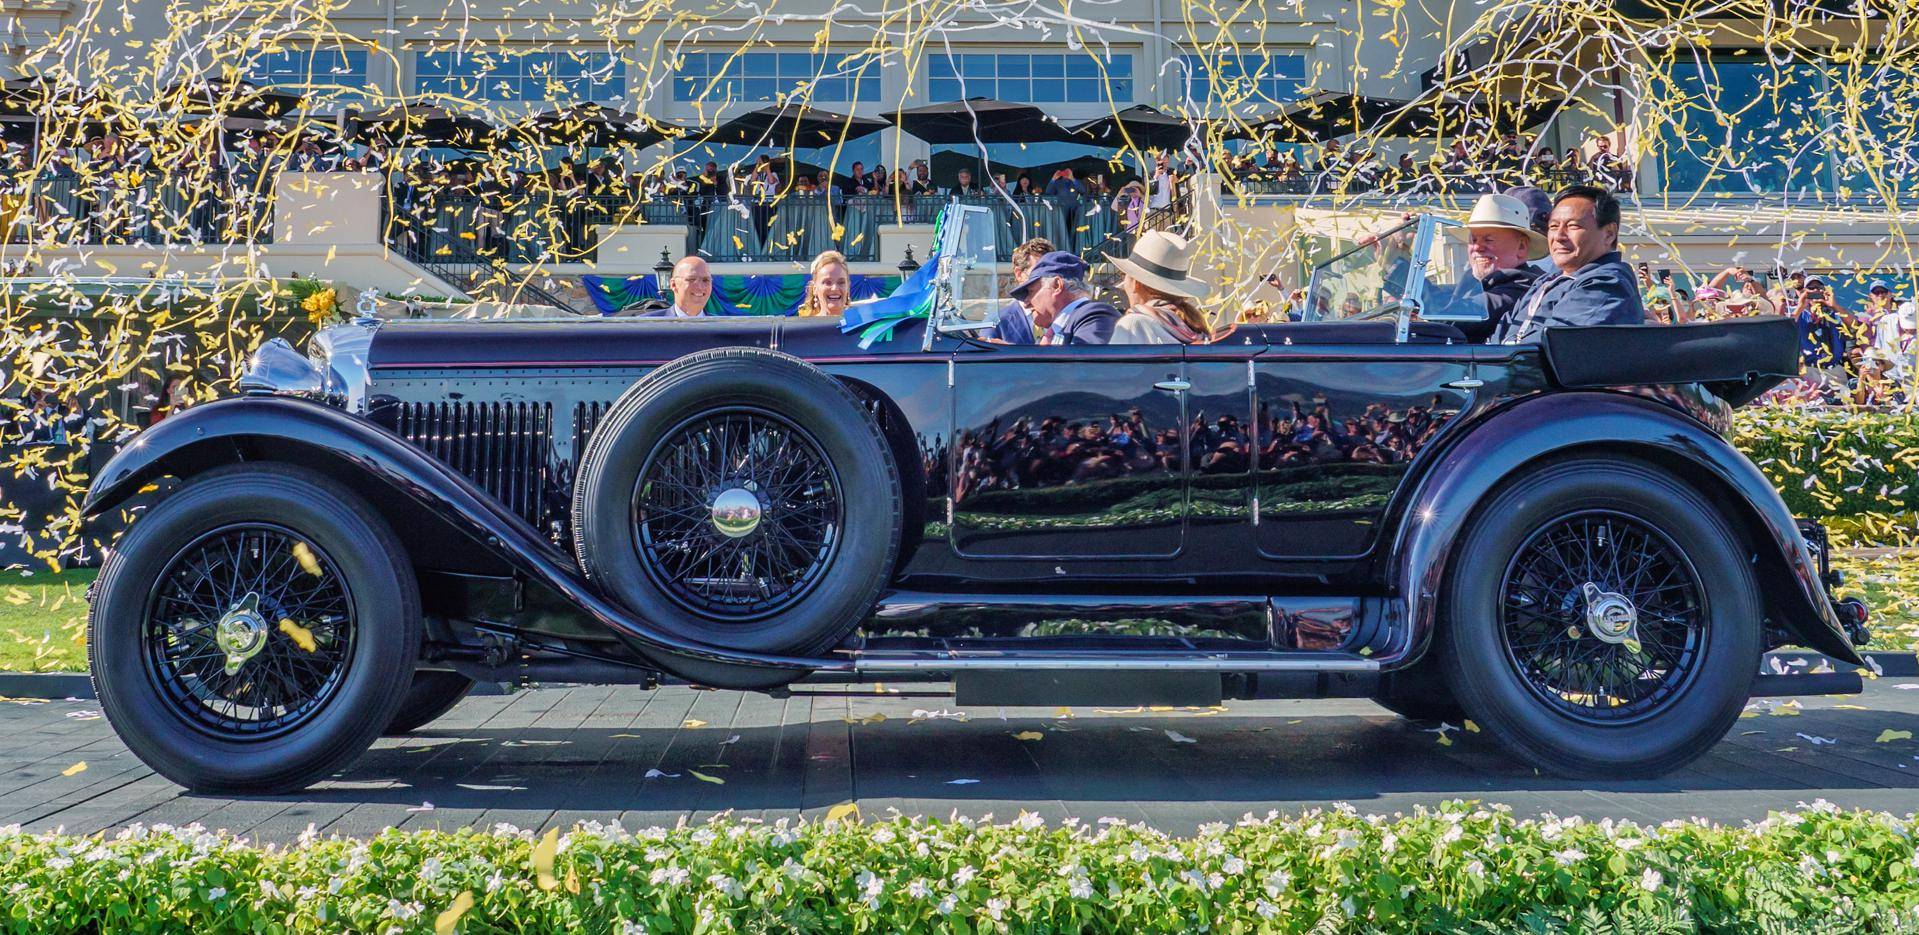 The Best of Monterey Car Week 2019 in Photos